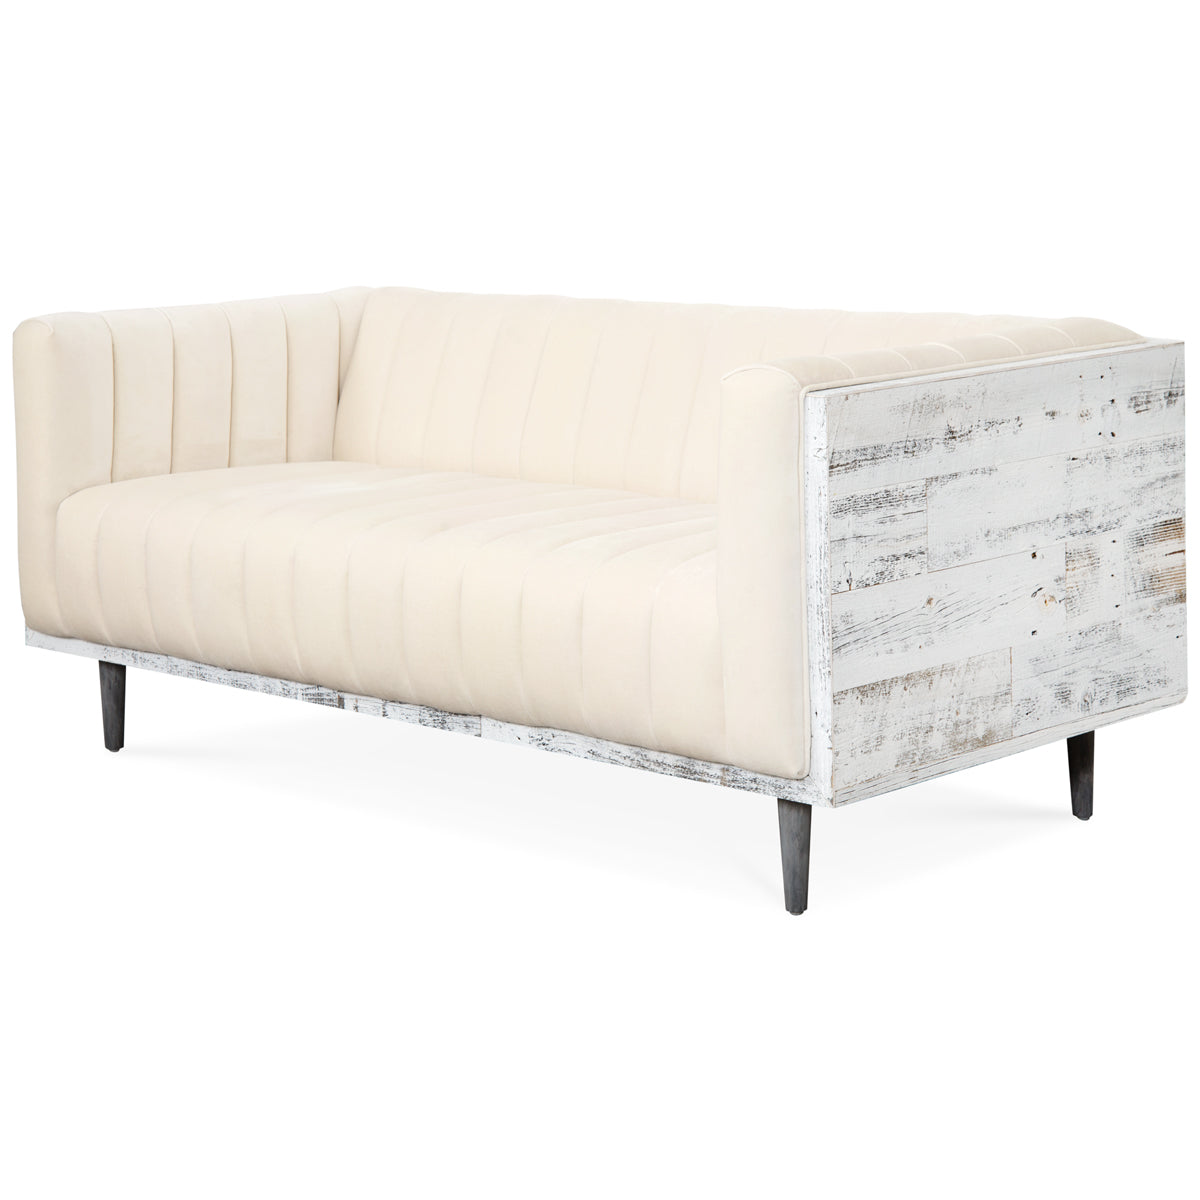 Cody Loveseat with Channel Tufting - ModShop1.com